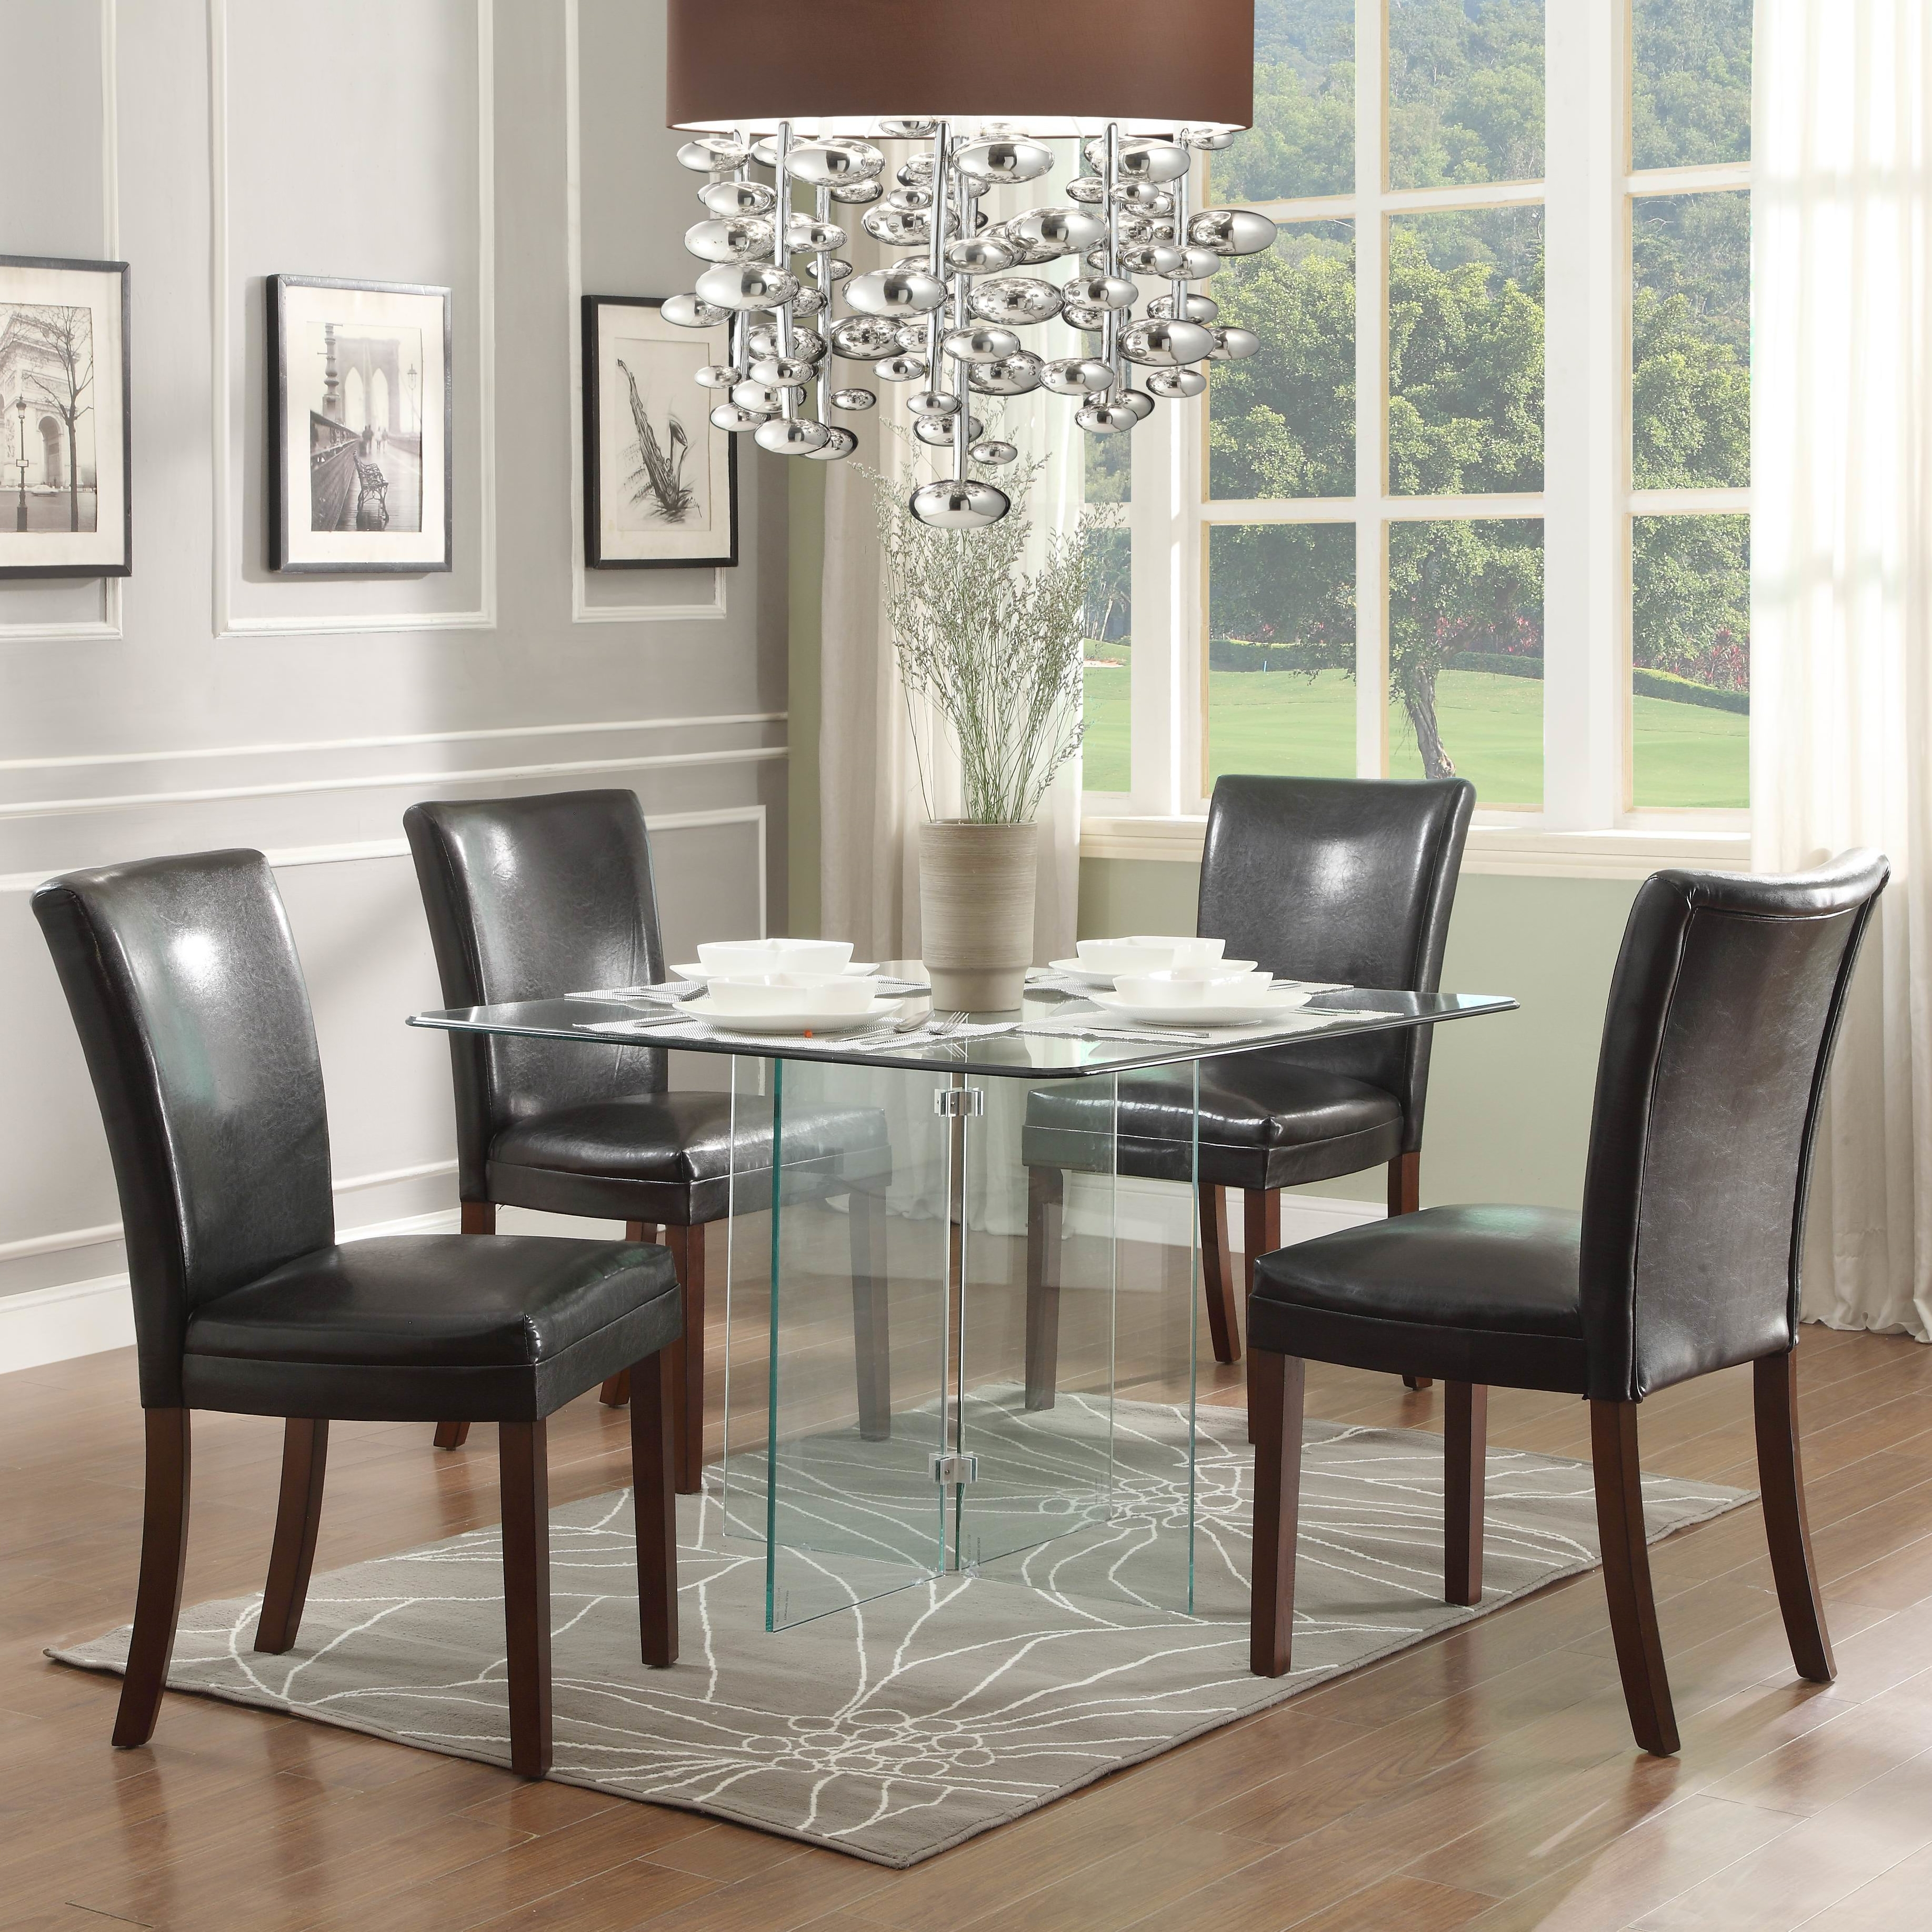 Permalink to Square Glass Kitchen Table Sets